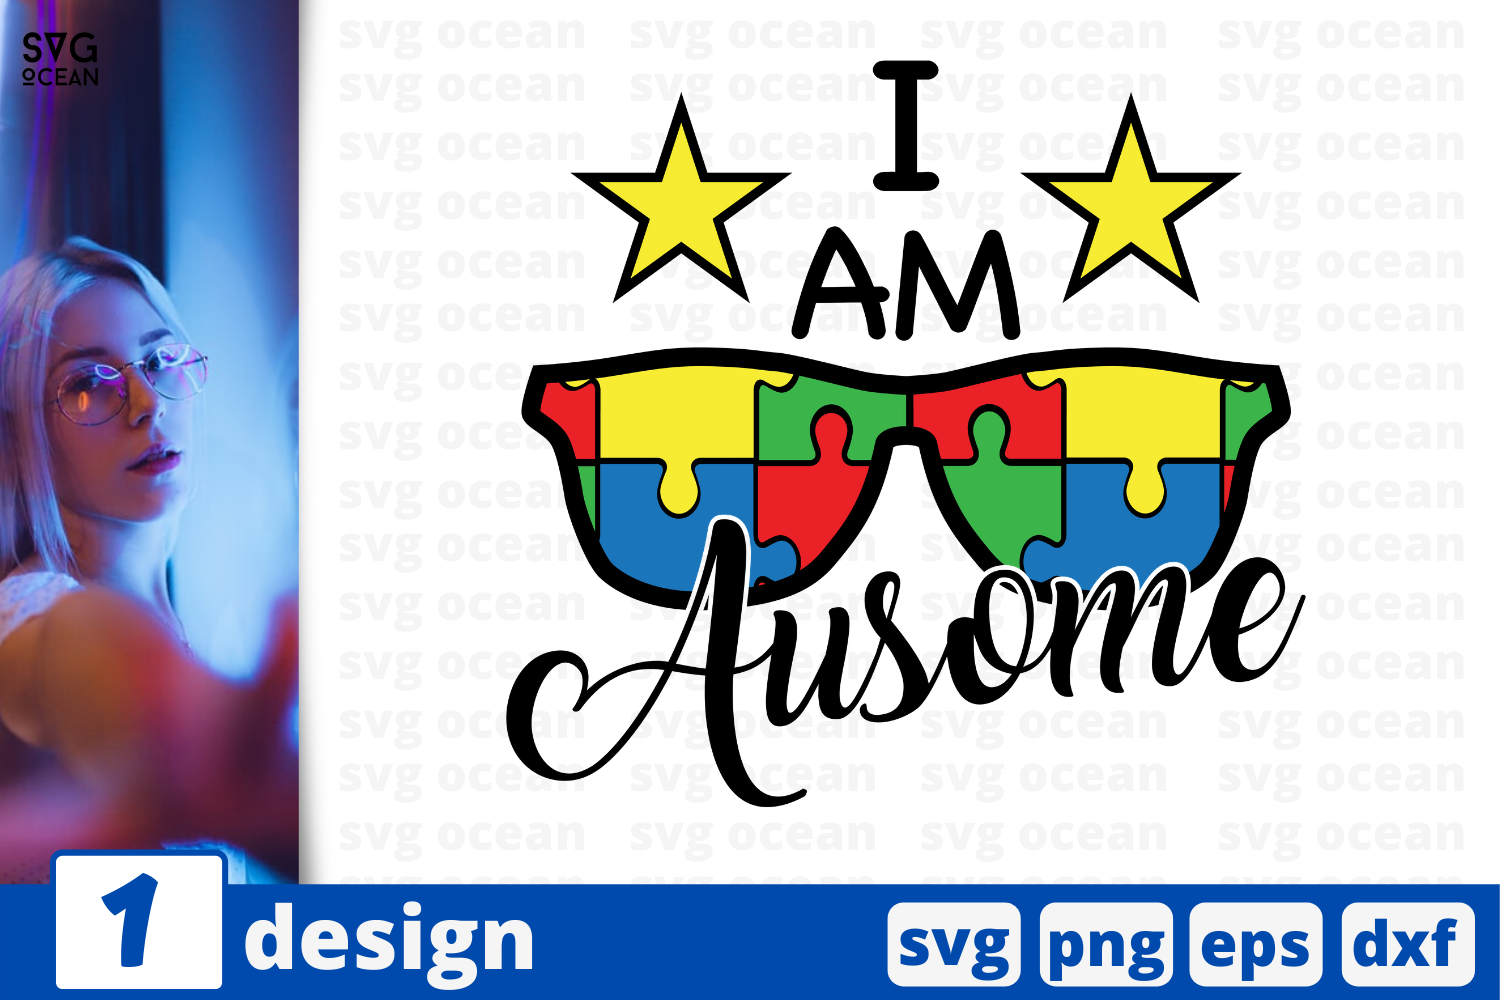 Download Free I Am Ausome Graphic By Svgocean Creative Fabrica for Cricut Explore, Silhouette and other cutting machines.